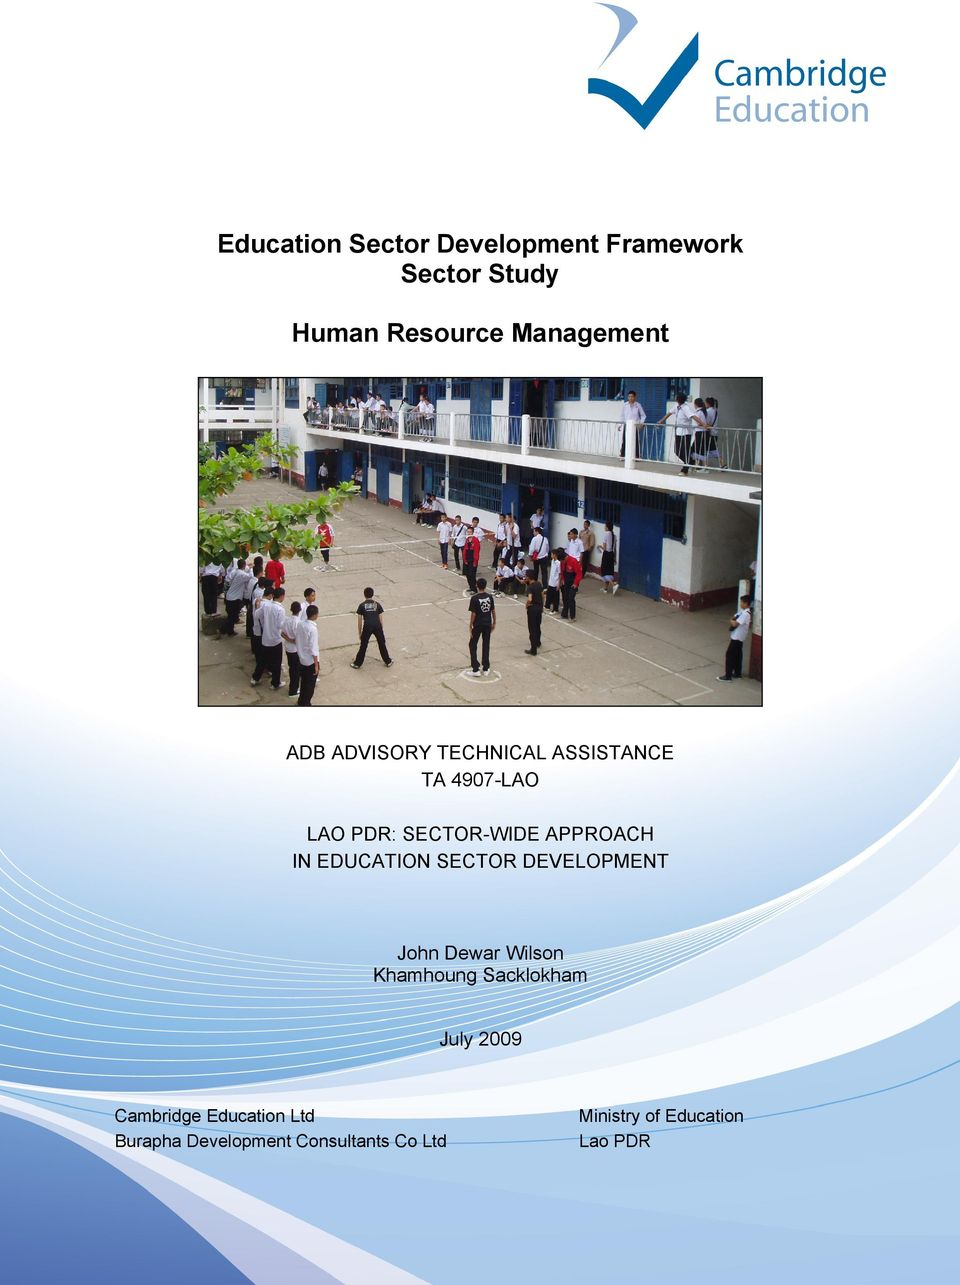 SECTOR-WIDE APPROACH IN EDUCATION SECTOR DEVELOPMENT John Dewar Wilson Khamhoung Sacklokham